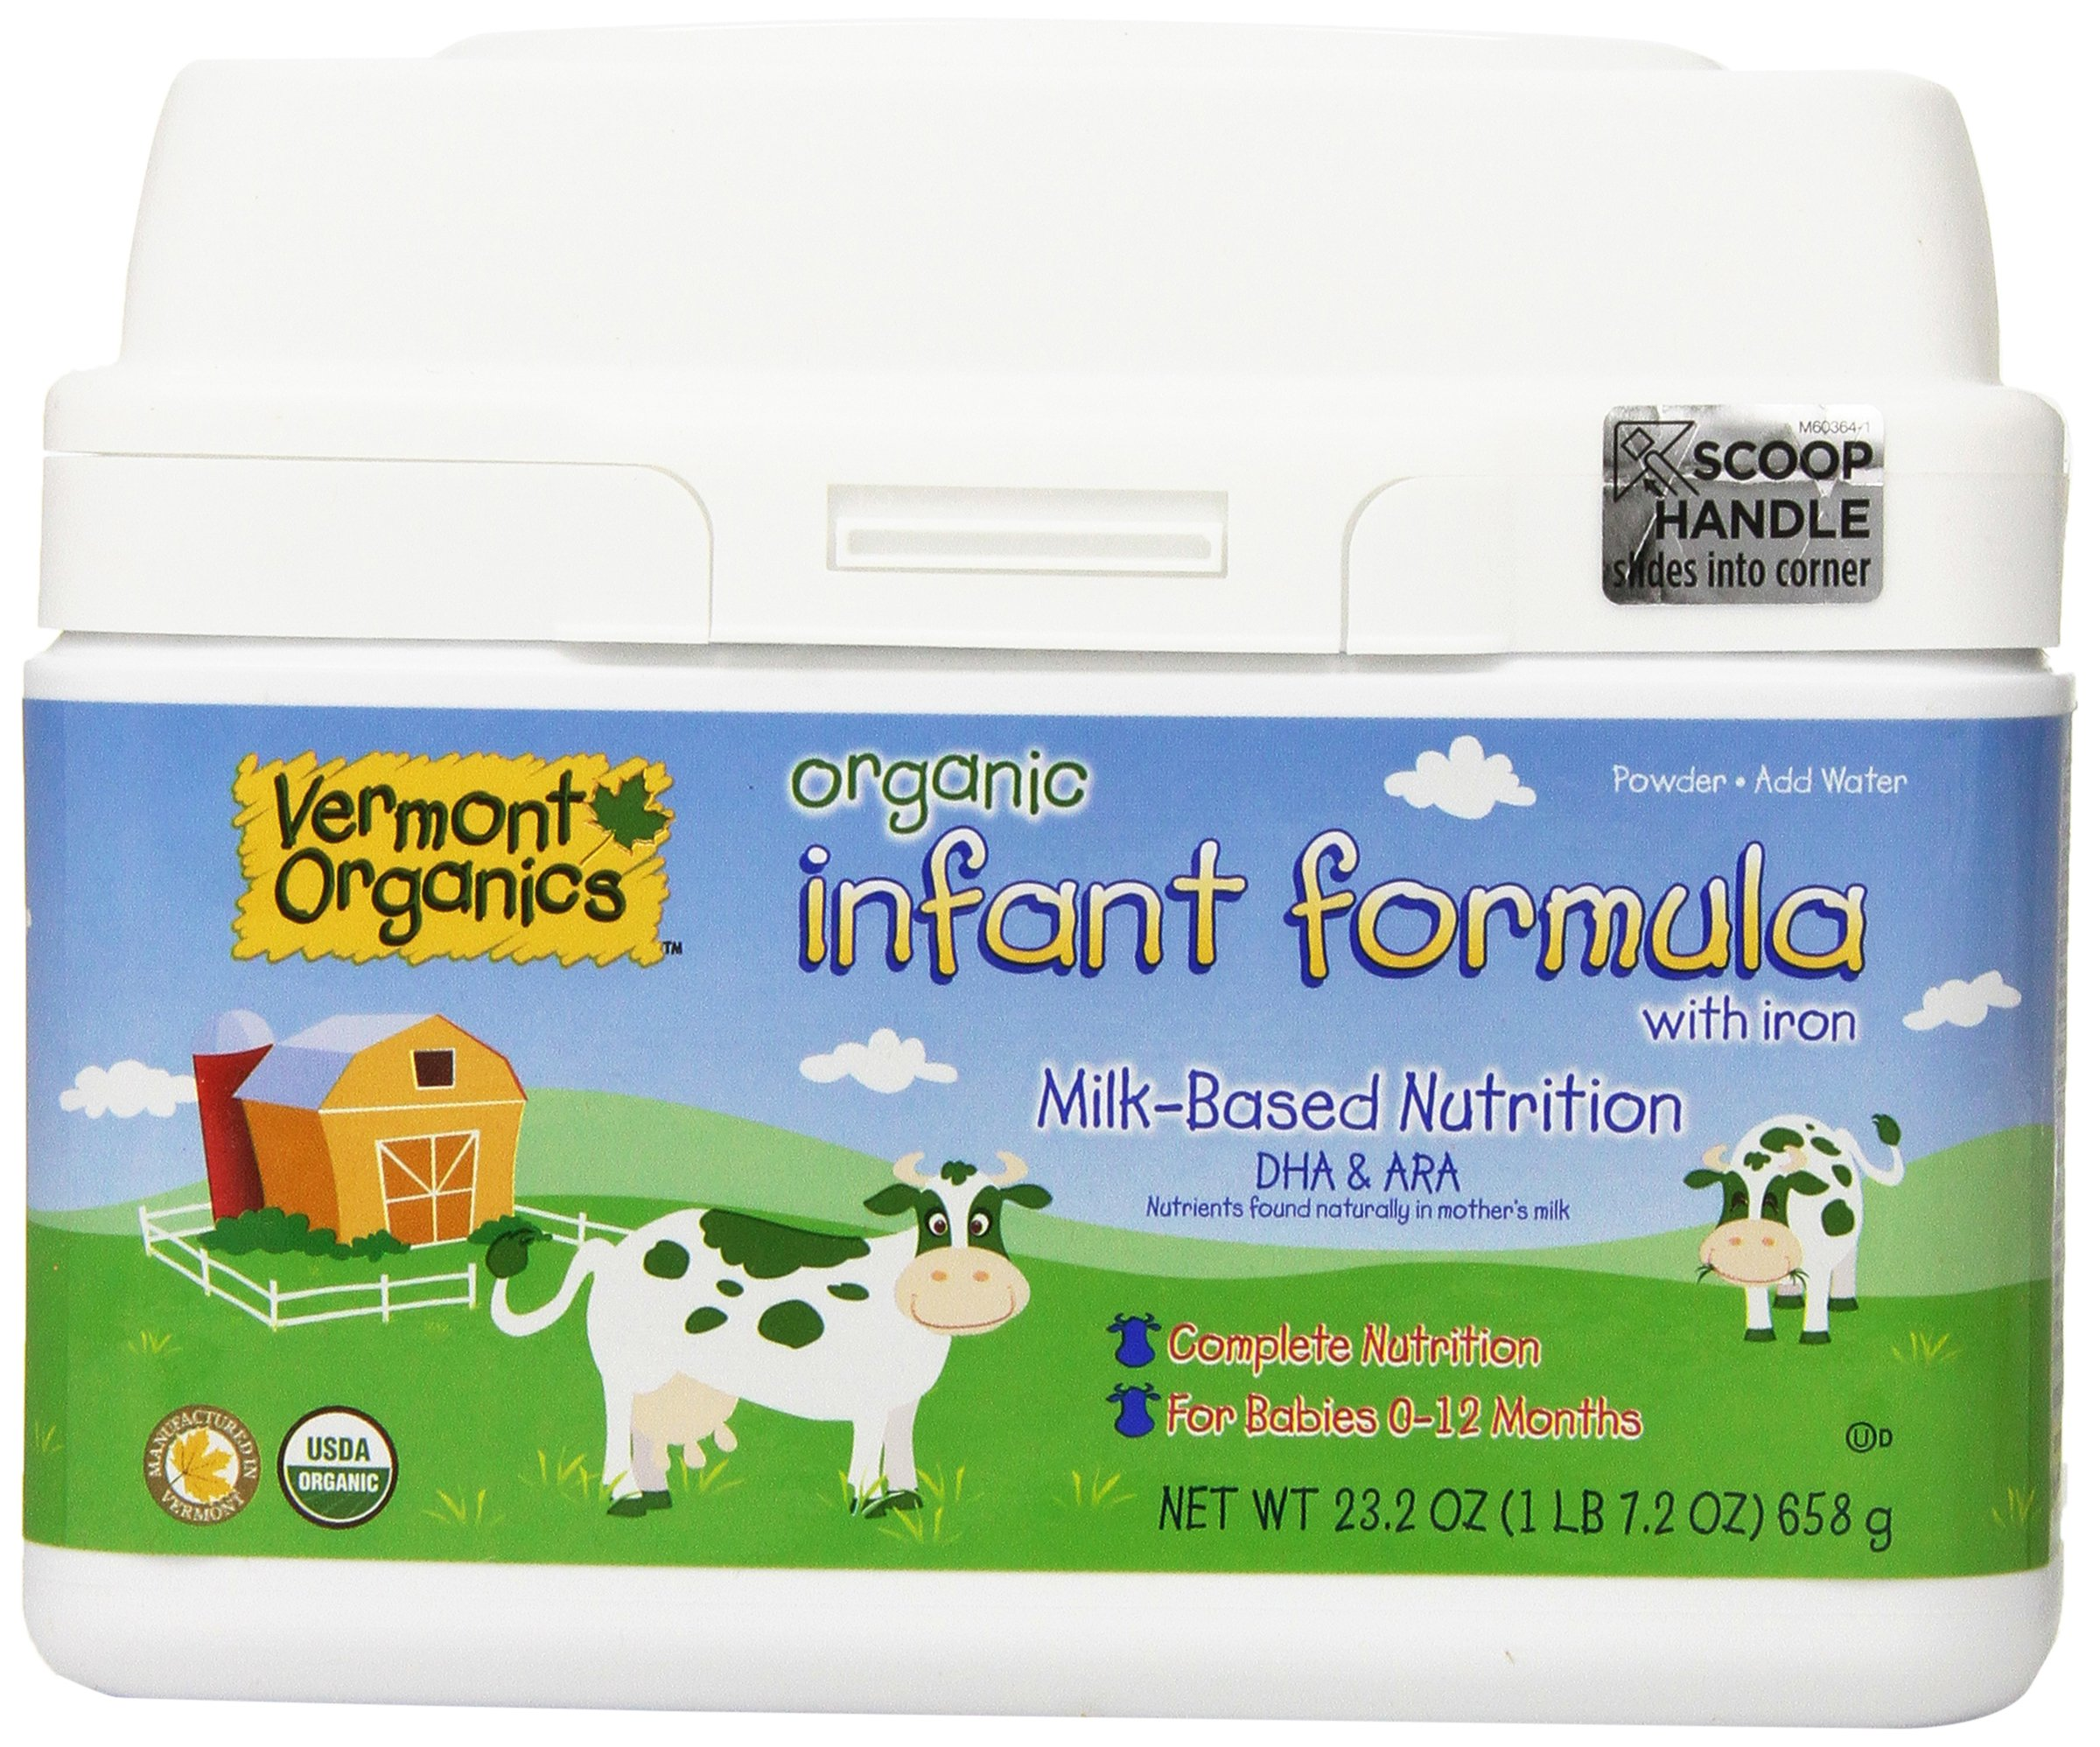 Vermont Organics Milk-Based Organic Infant Formula with Iron, 23.2 oz.  (Pack of 4) by Vermont Organics